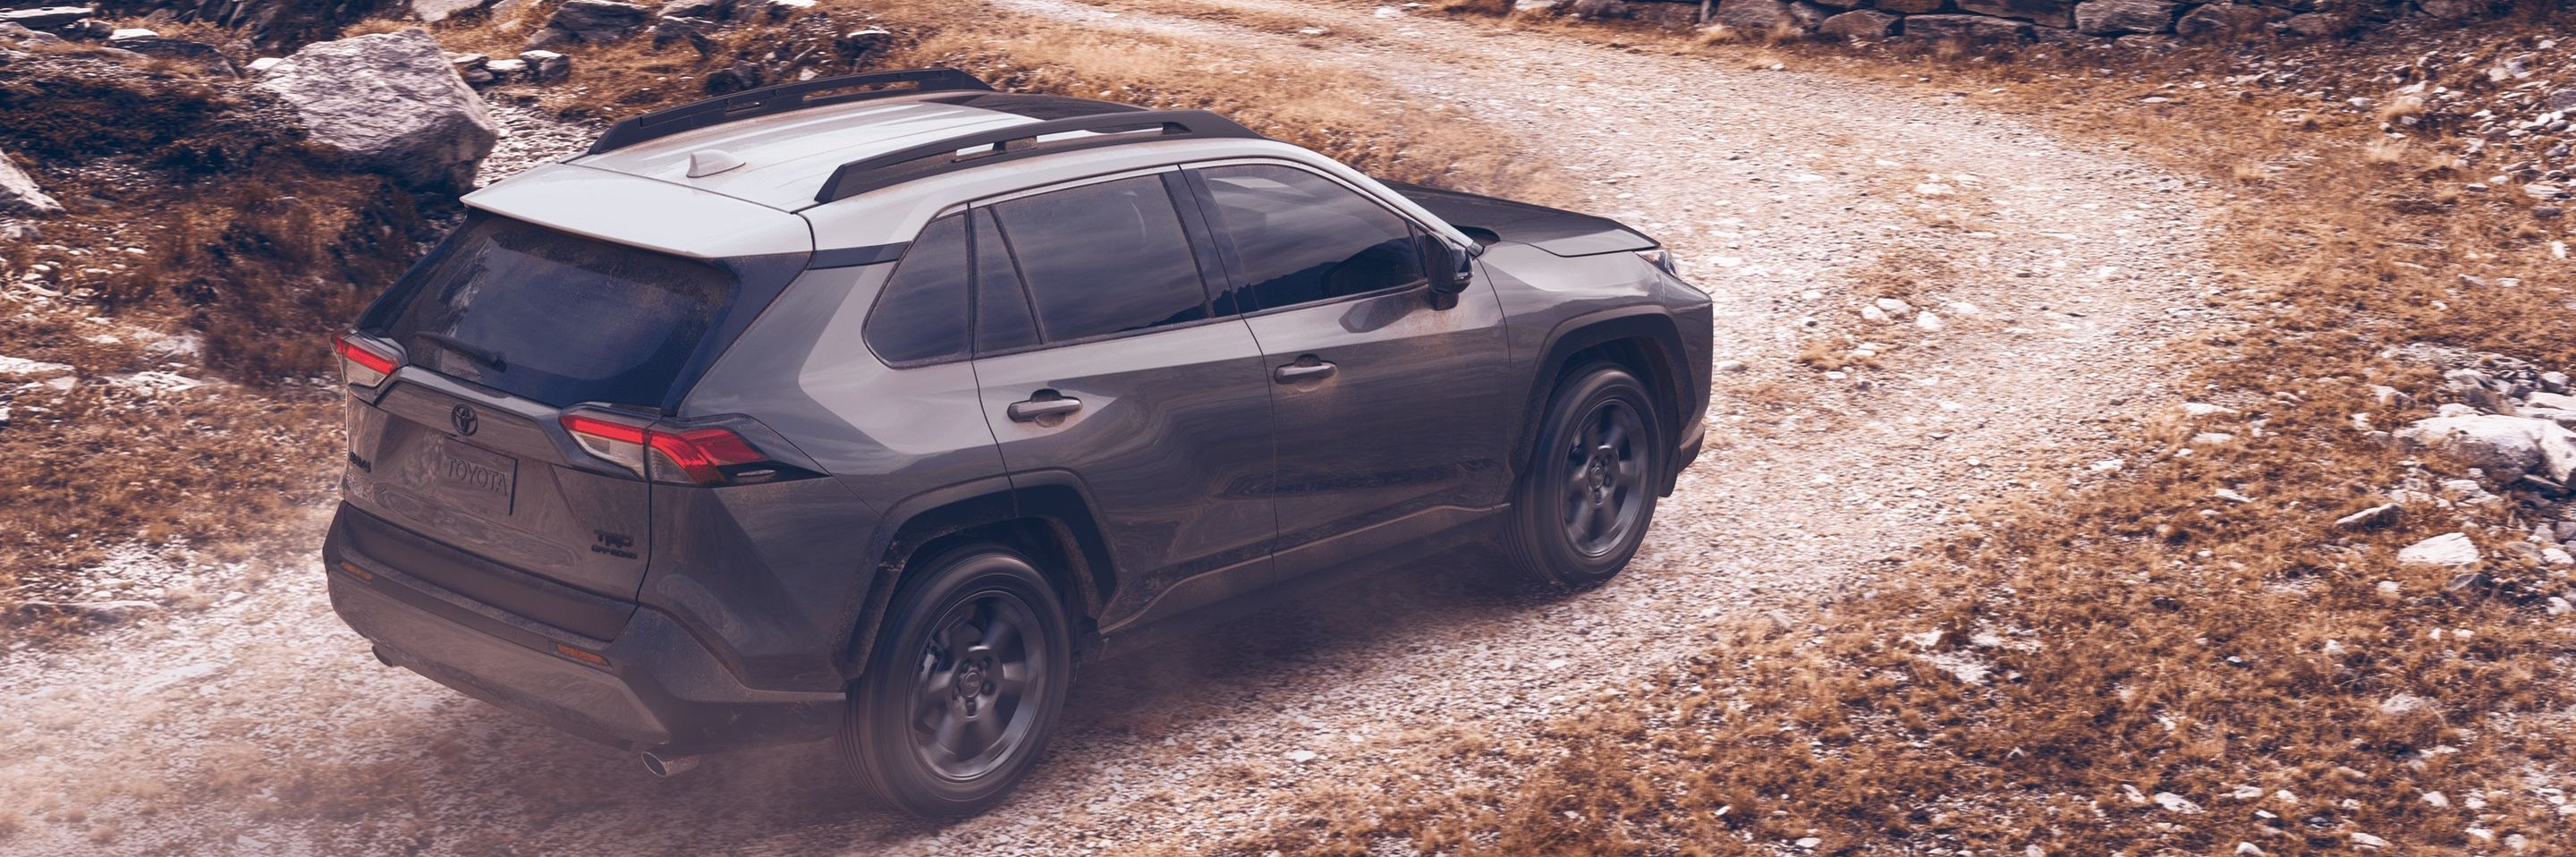 2020 Toyota RAV4 Leasing near Paramus, NJ